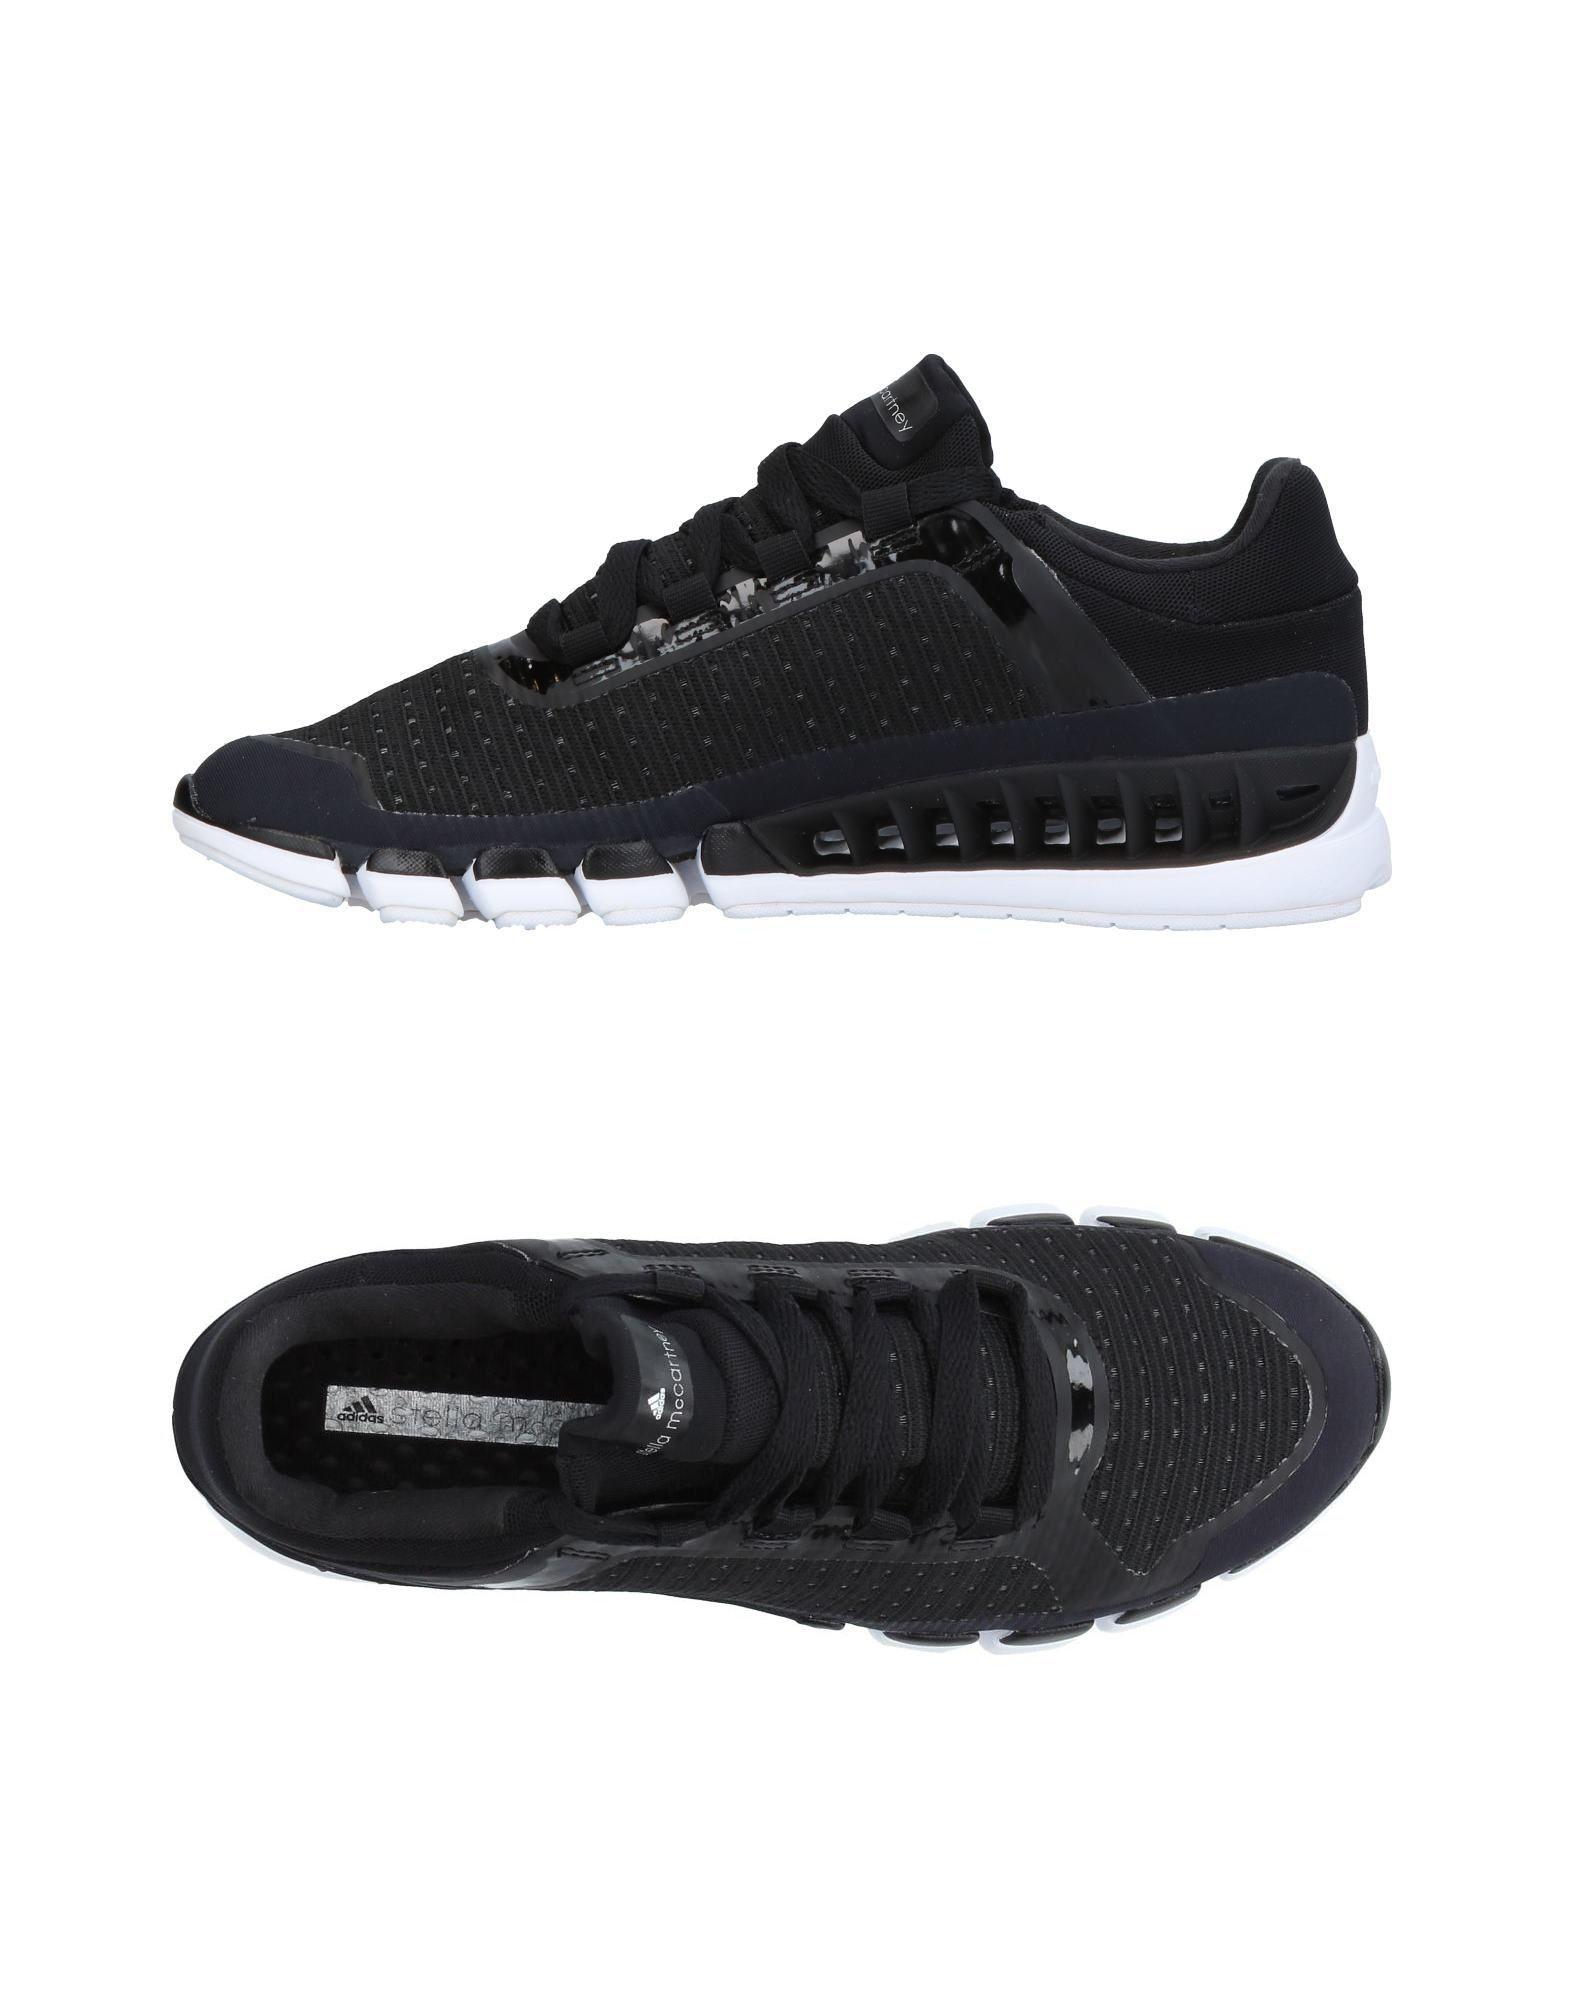 Adidas By Stella Mccartney Sneakers In Black